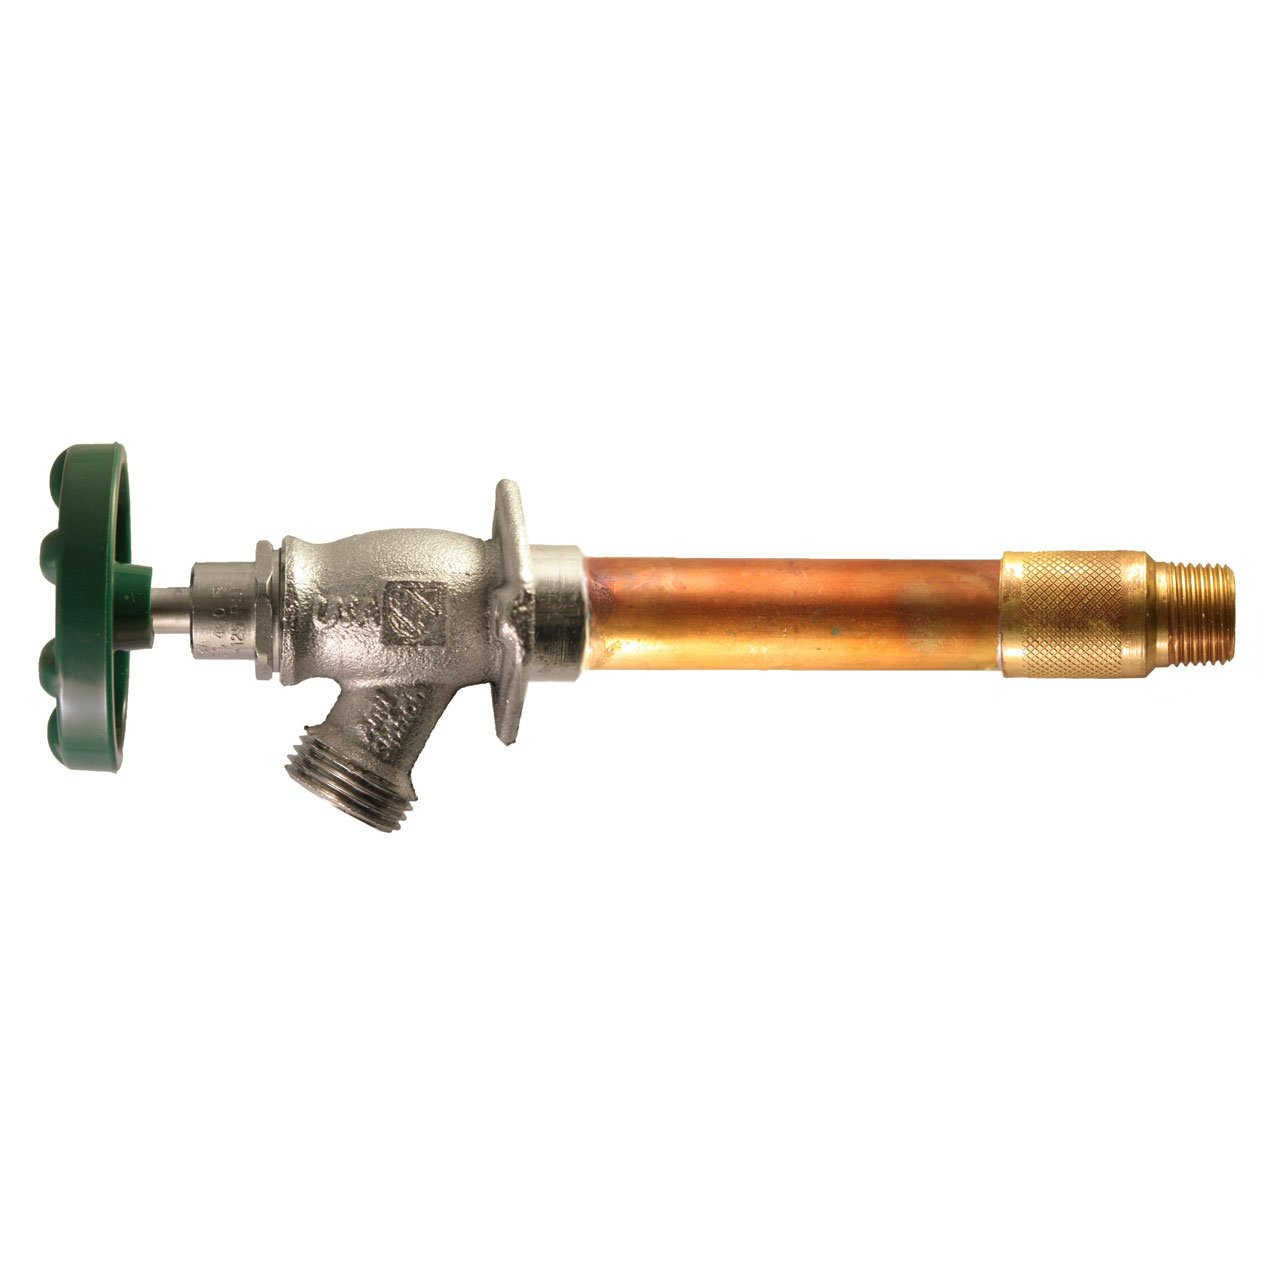 Arrowhead 476-04 4-Inch Freeze-Proof Arrow-Breaker QuickTurn Anti-Siphon Hydrant with 1/2-Inch Sweat or 1/2-Inch MIP Inlet Connection